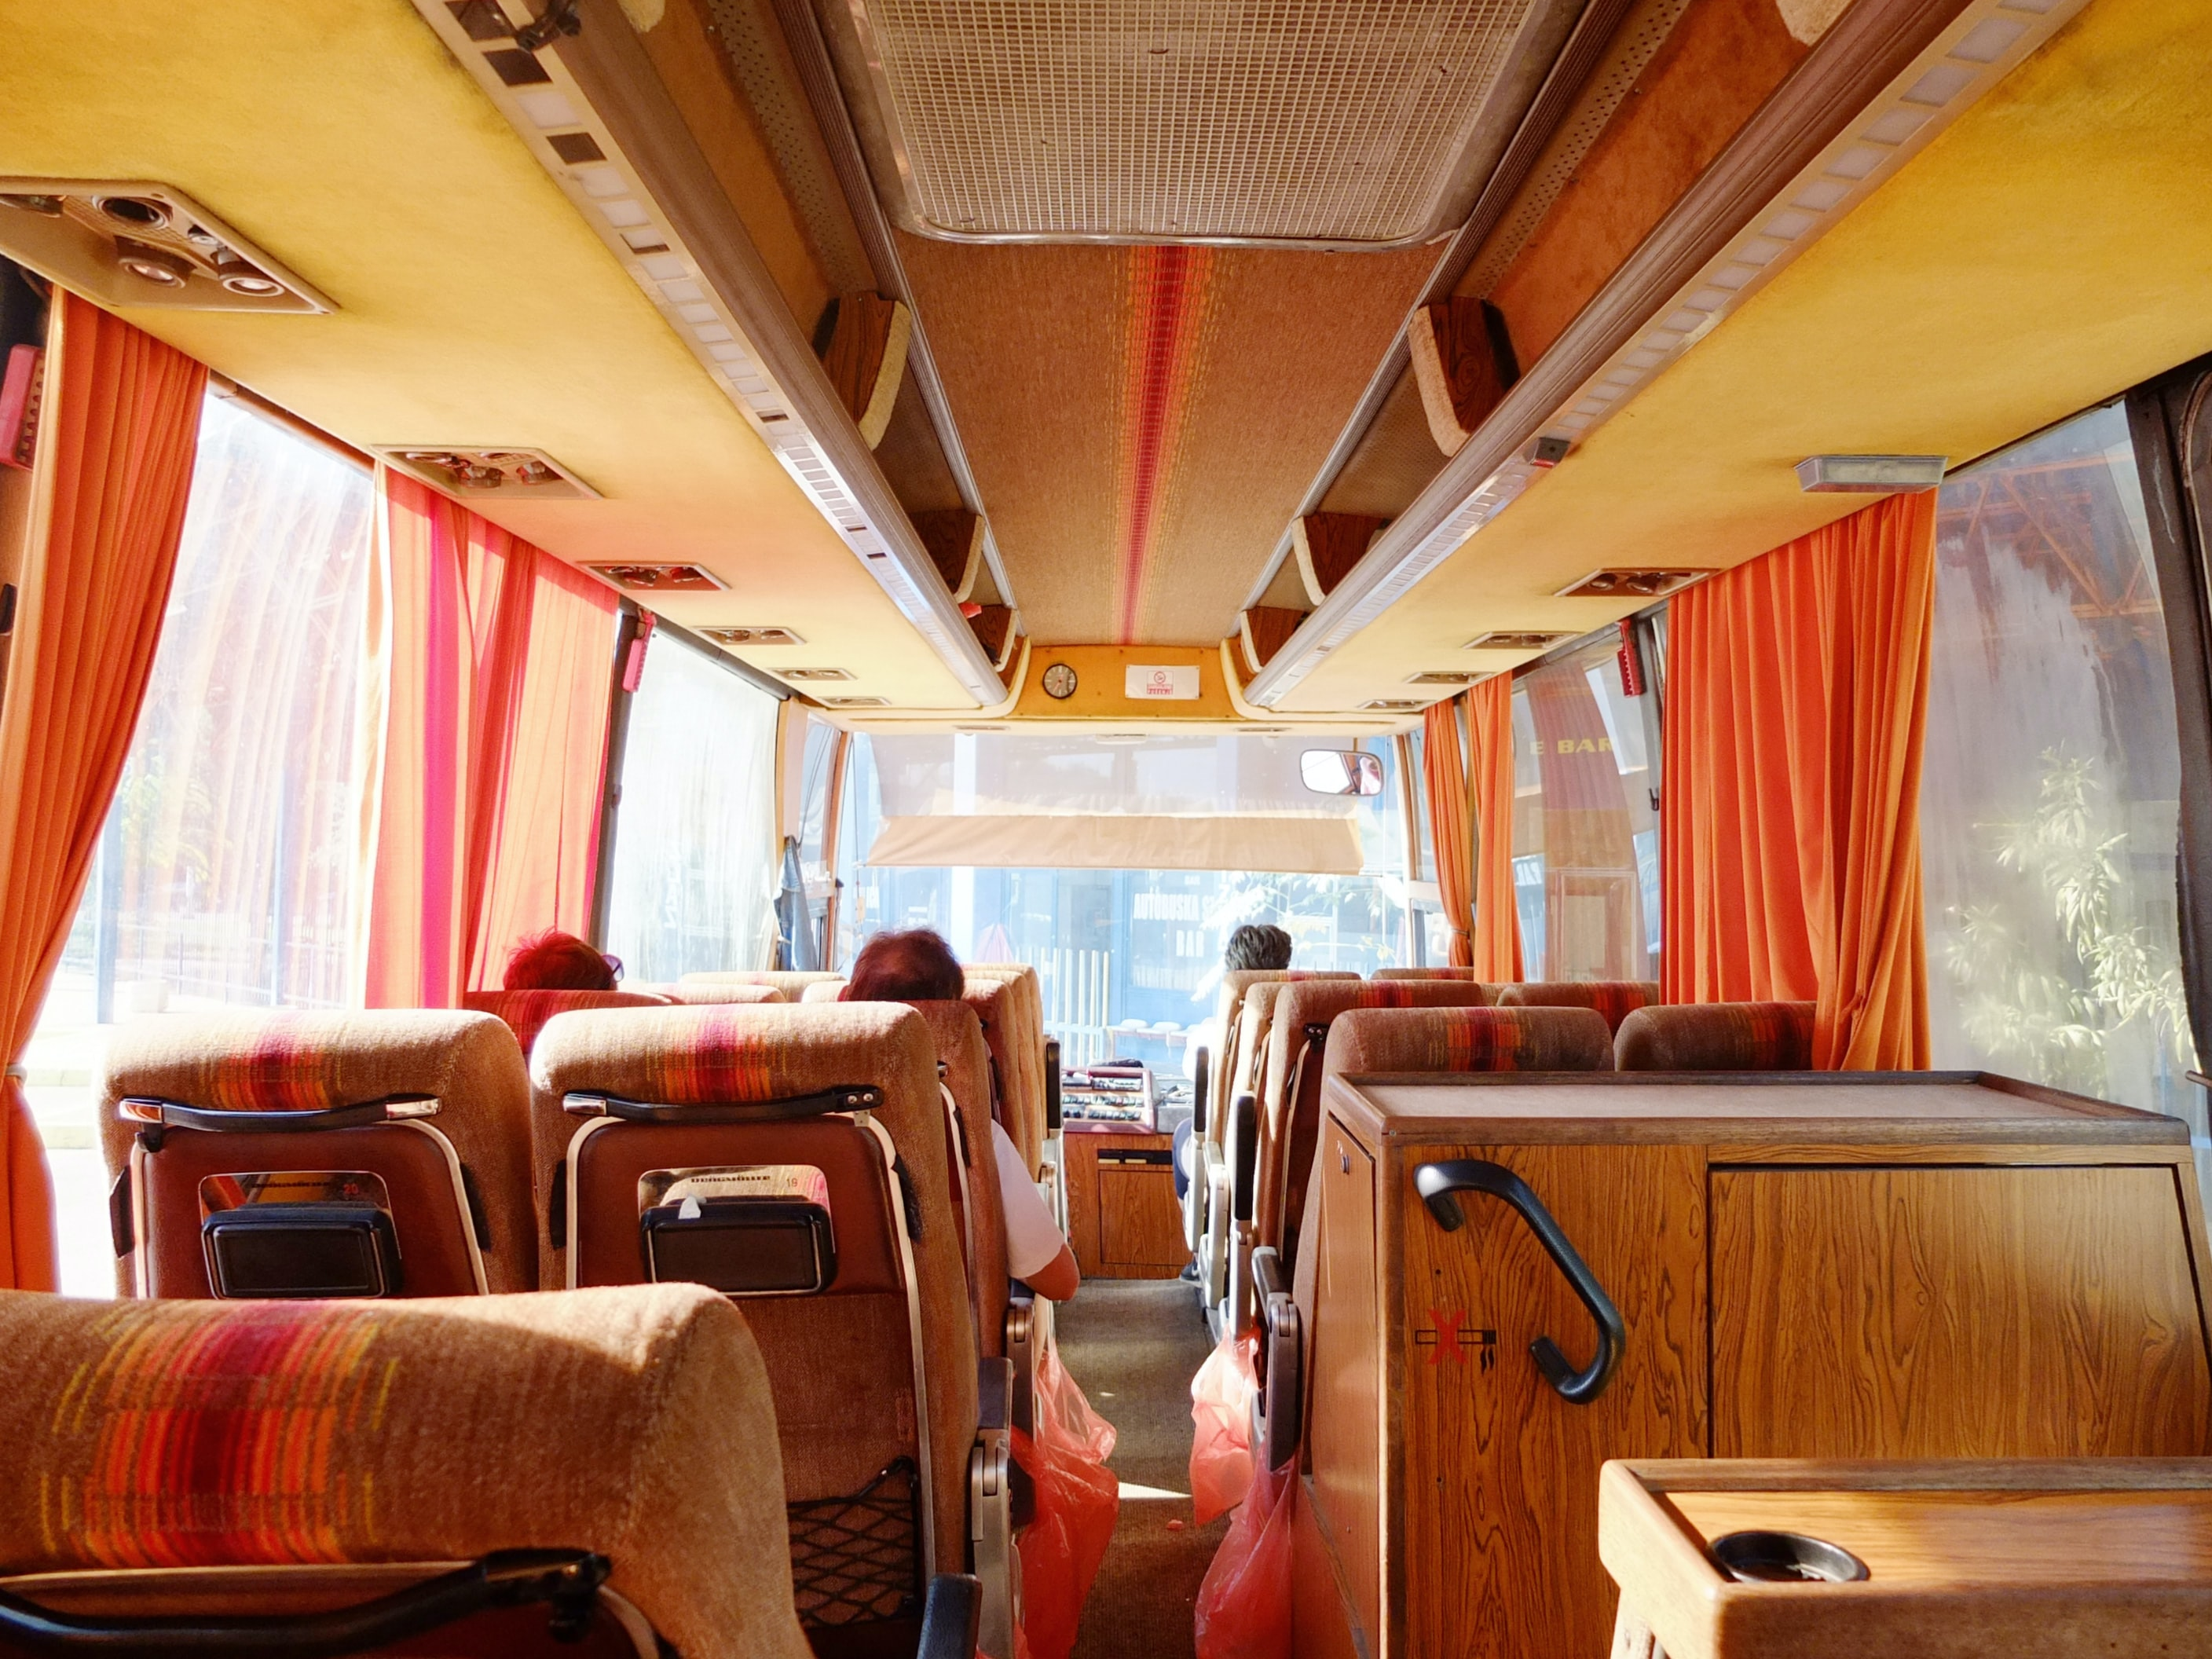 brown wooden interior bus